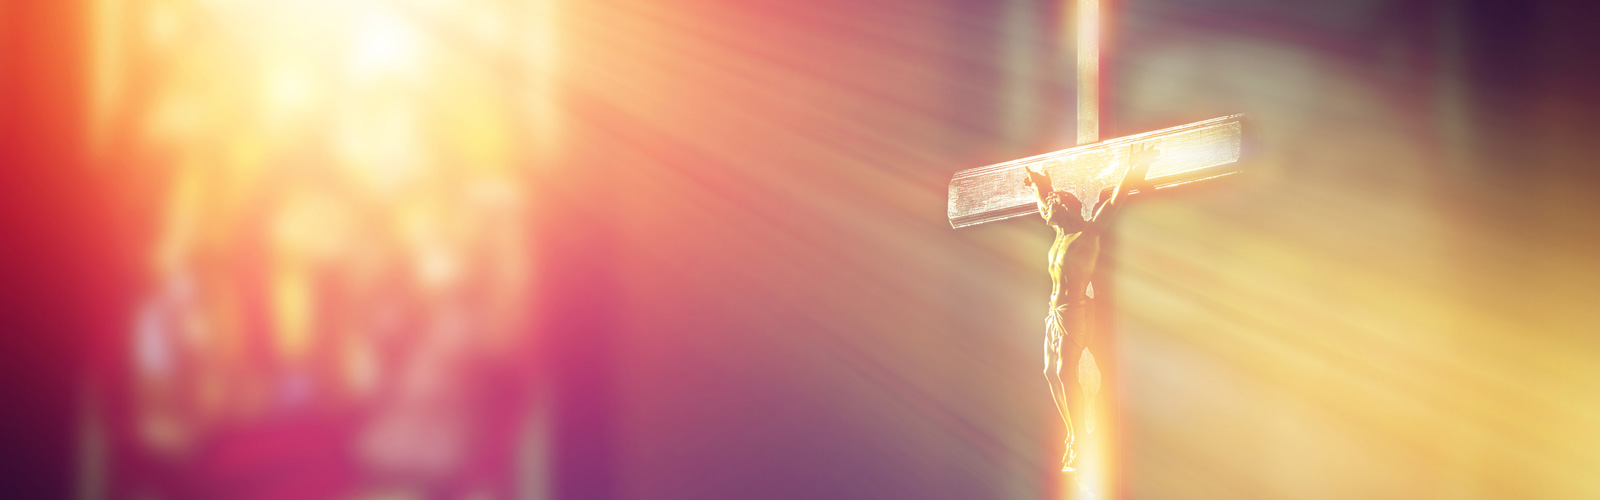 light shining on crucifix